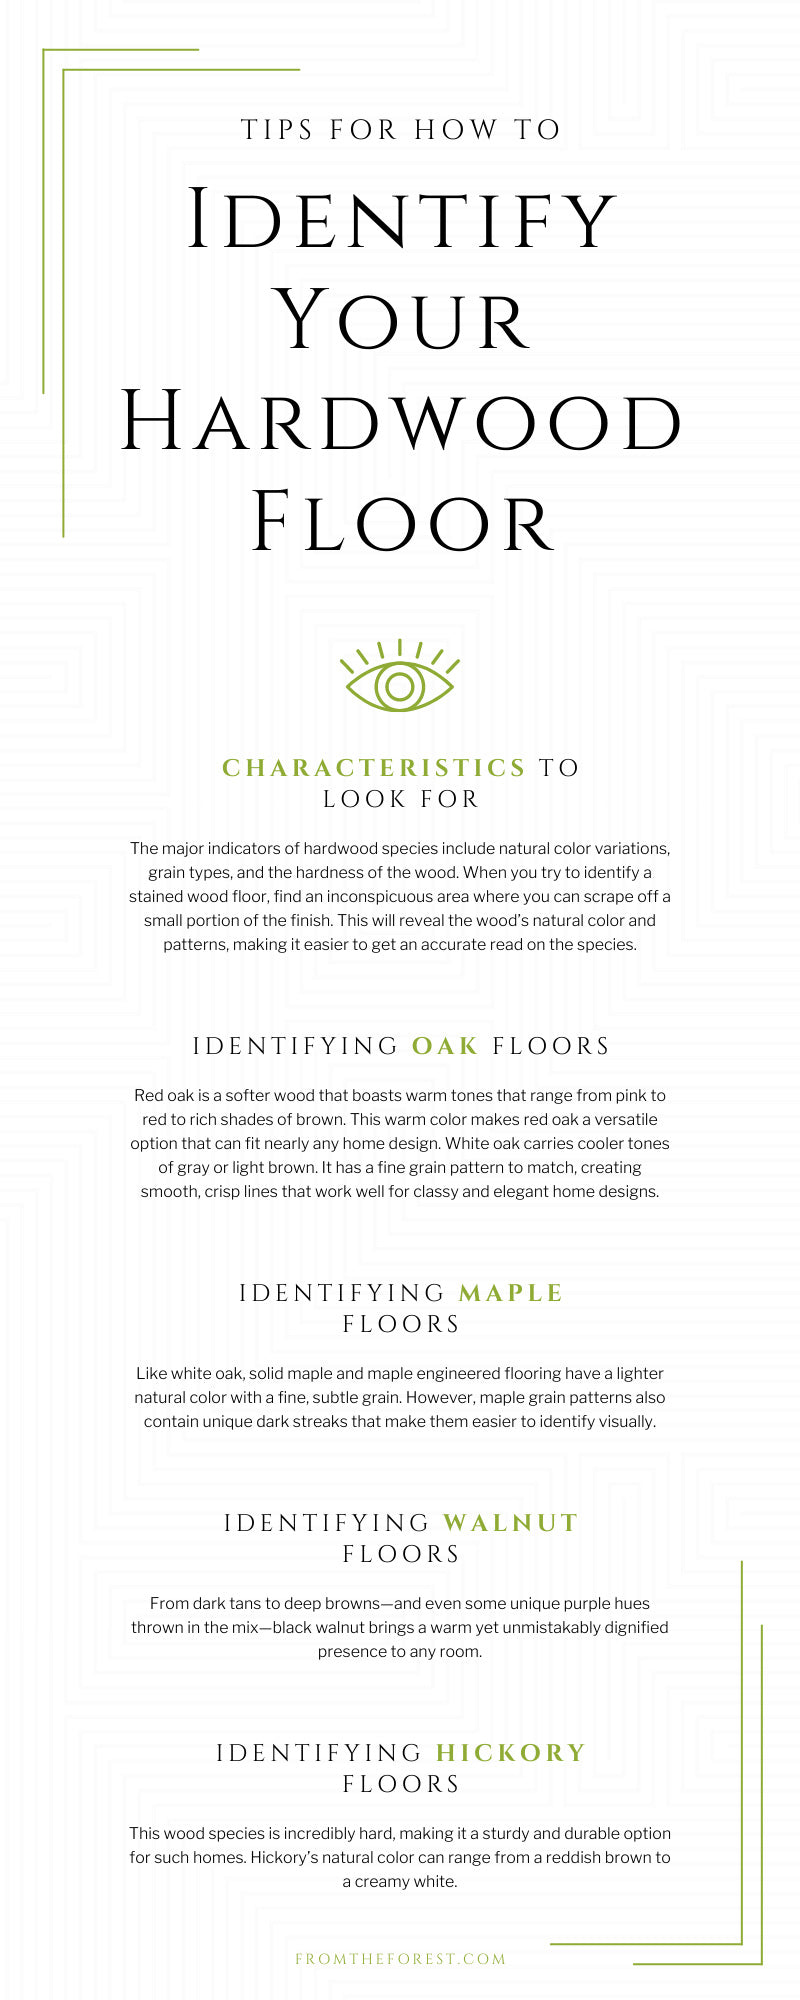 Tips for How To Identify Your Hardwood Floor